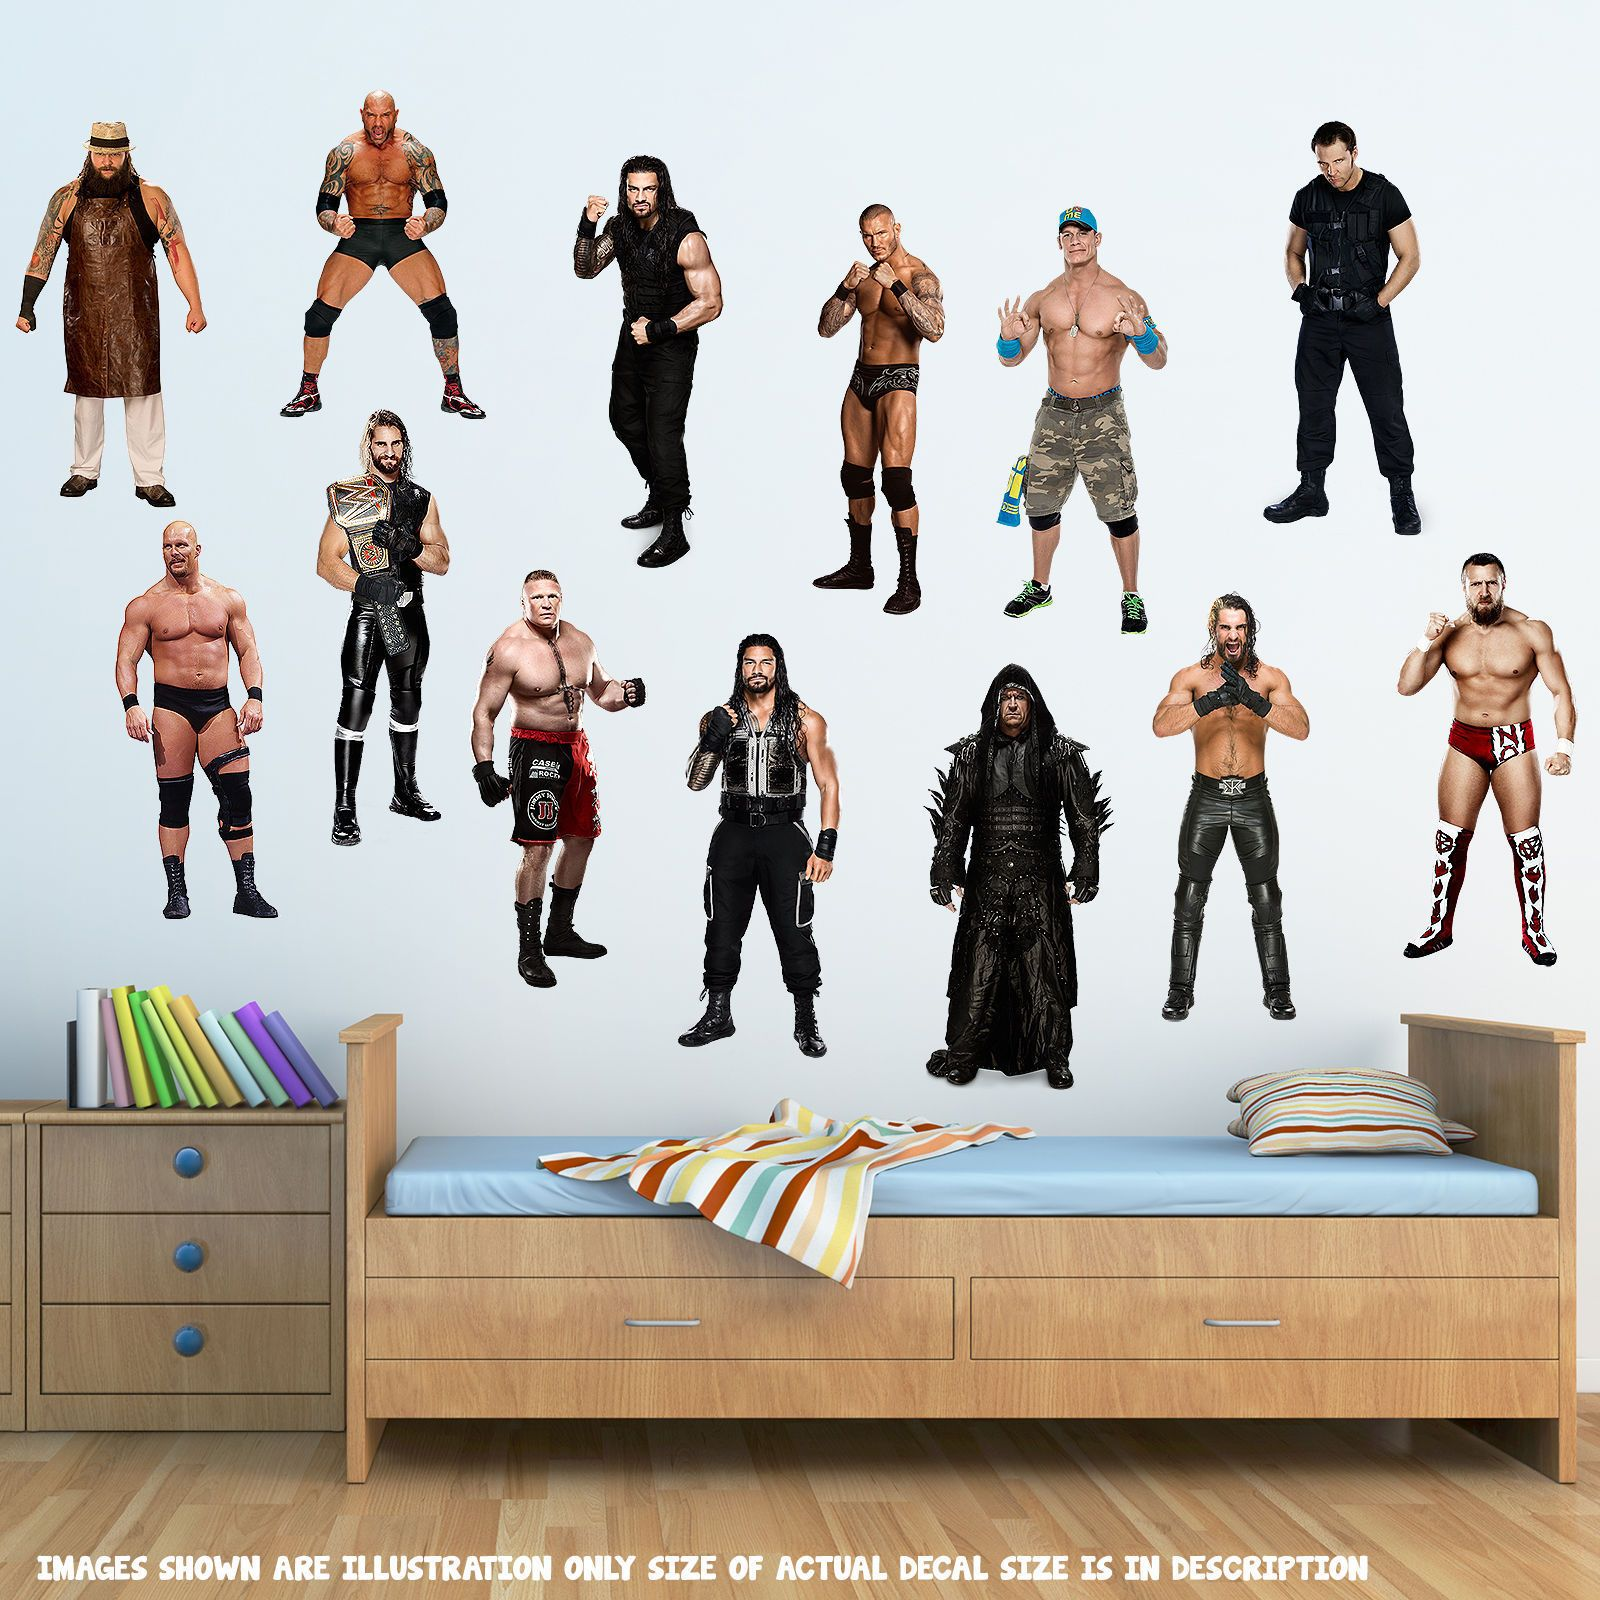 #Wrestlers Wwe Wrestling #vinyl Decal Boys Kids Bedroom Wall #window  Sticker Gift,